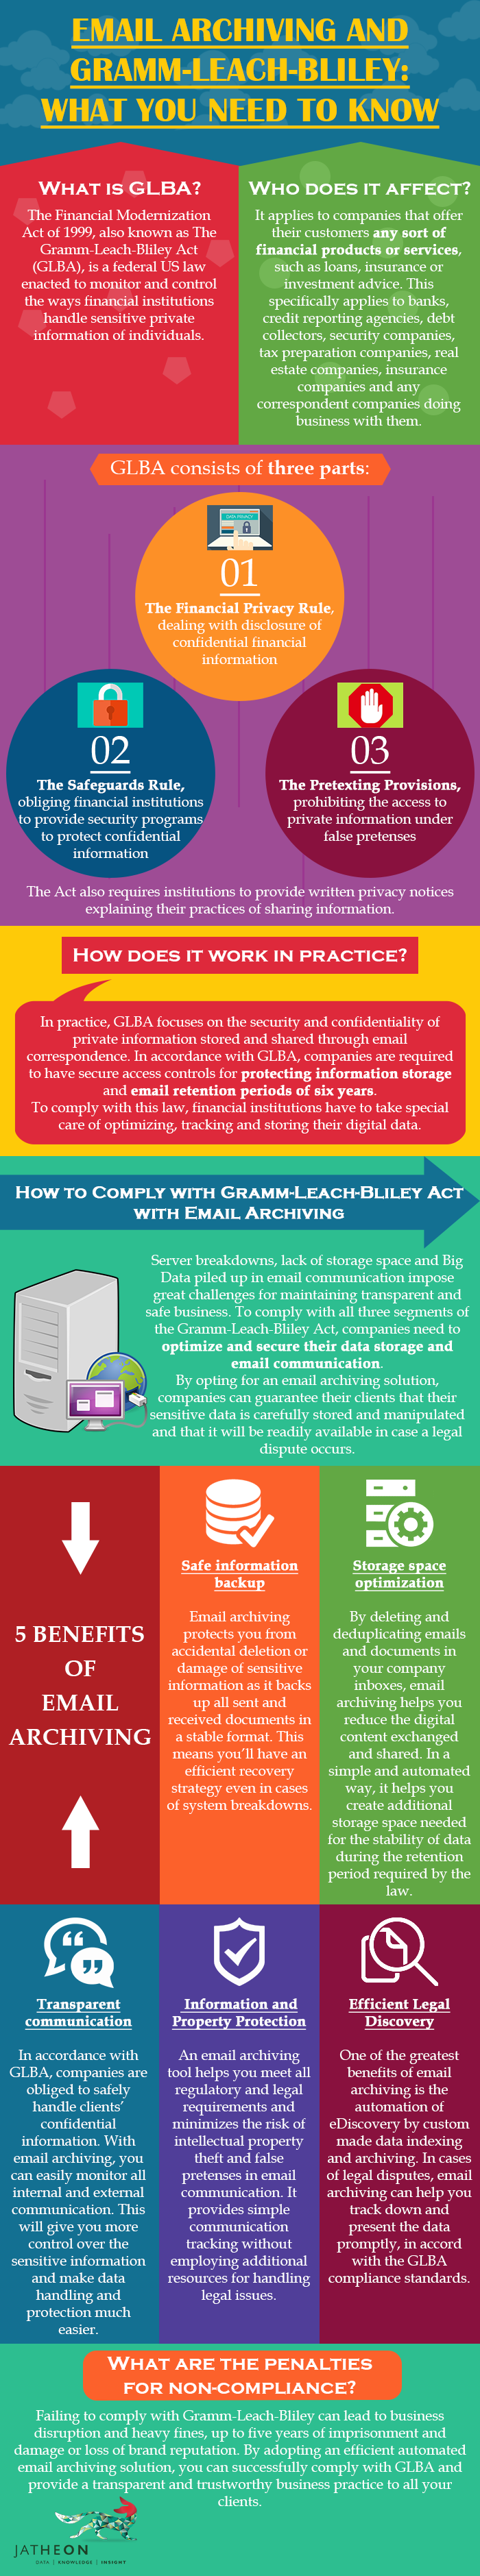 Email Archiving and Gramm-Leach-Bliley: What You Need to Know infographic